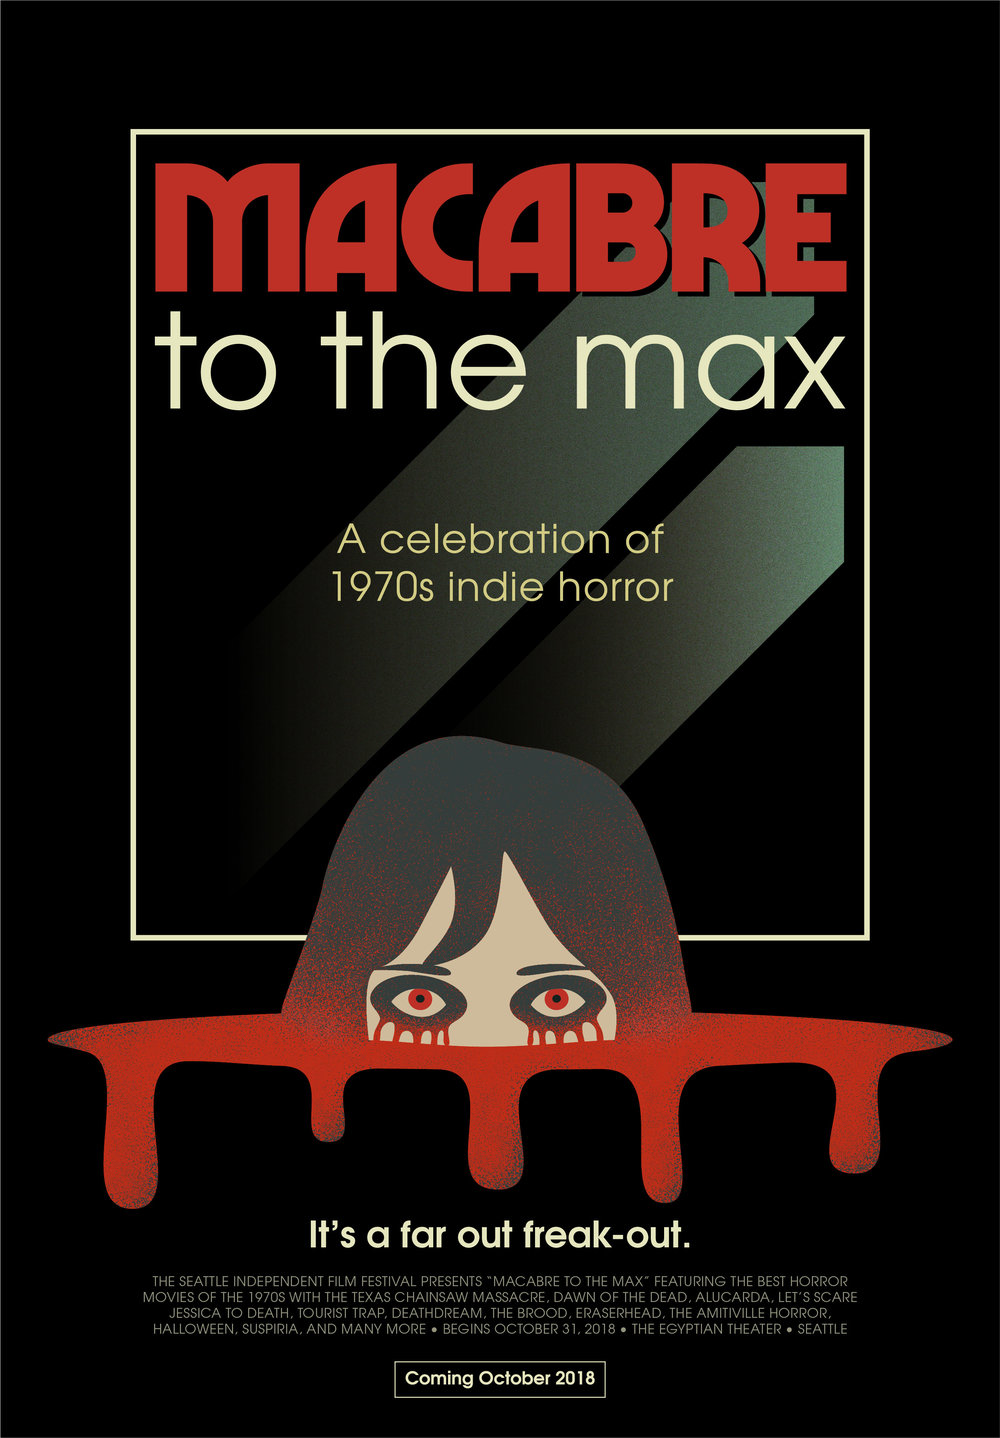 Poster design for a fictional 1970s independent horror film festival, Macabre to the Max.